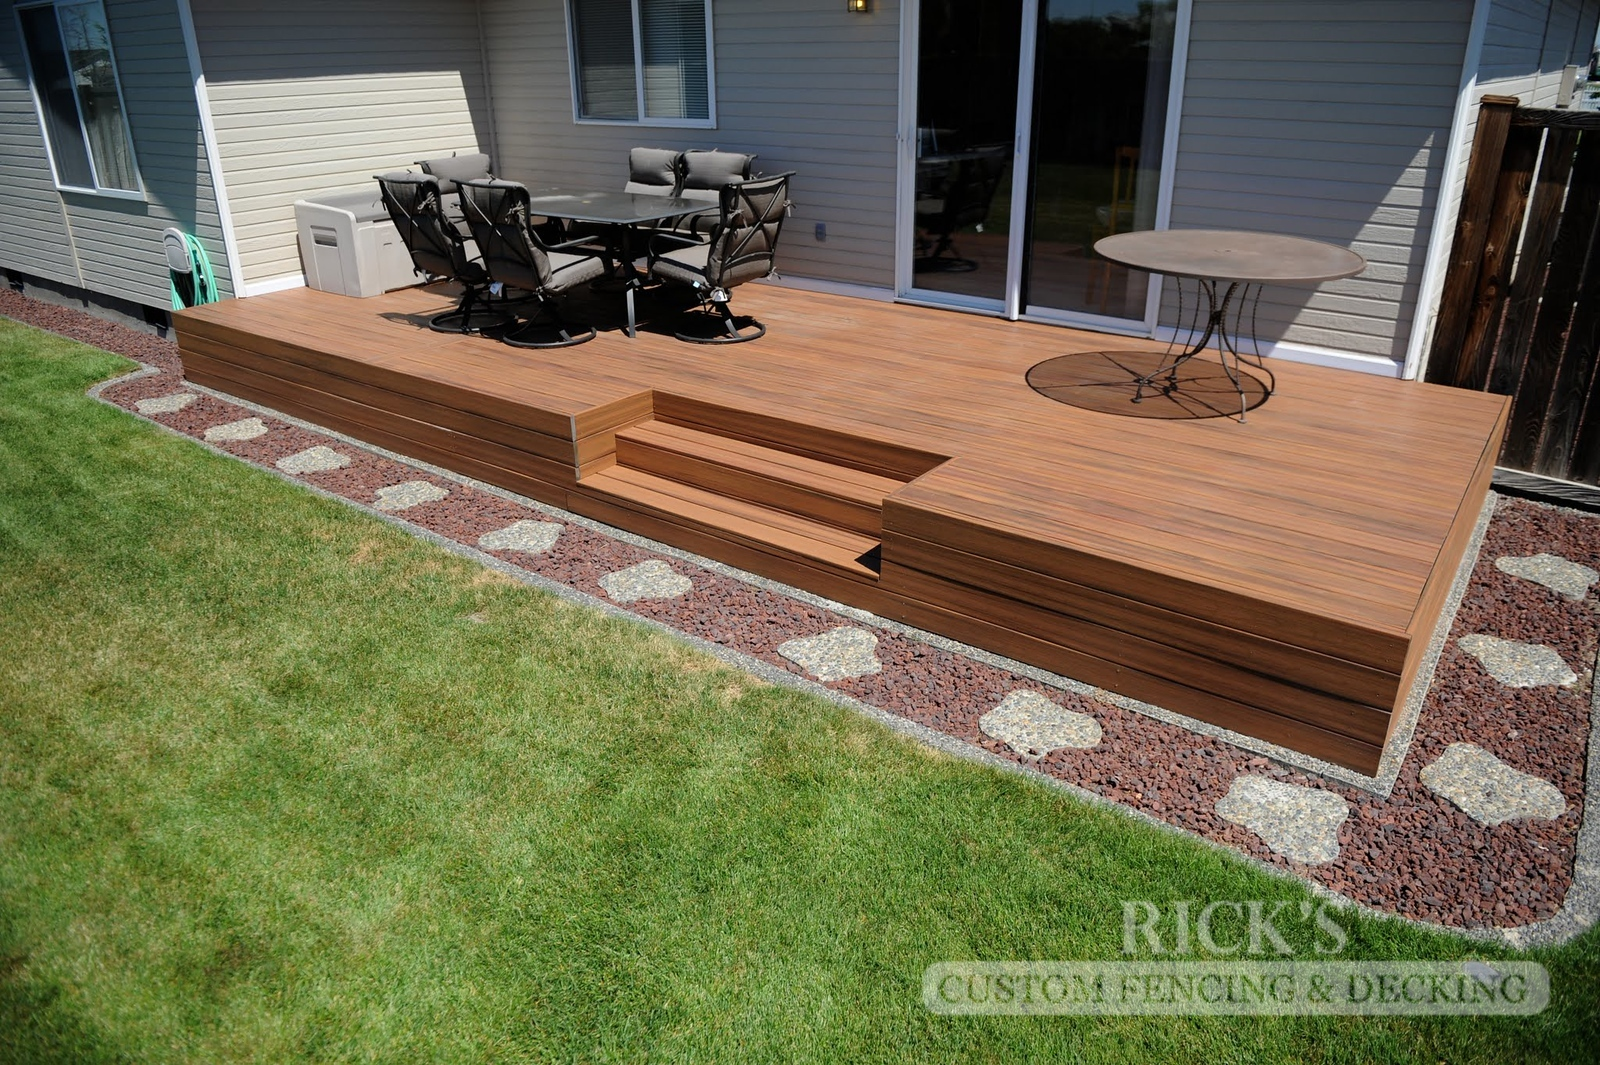 1234 - LifeStyle HDPE Composite Decking